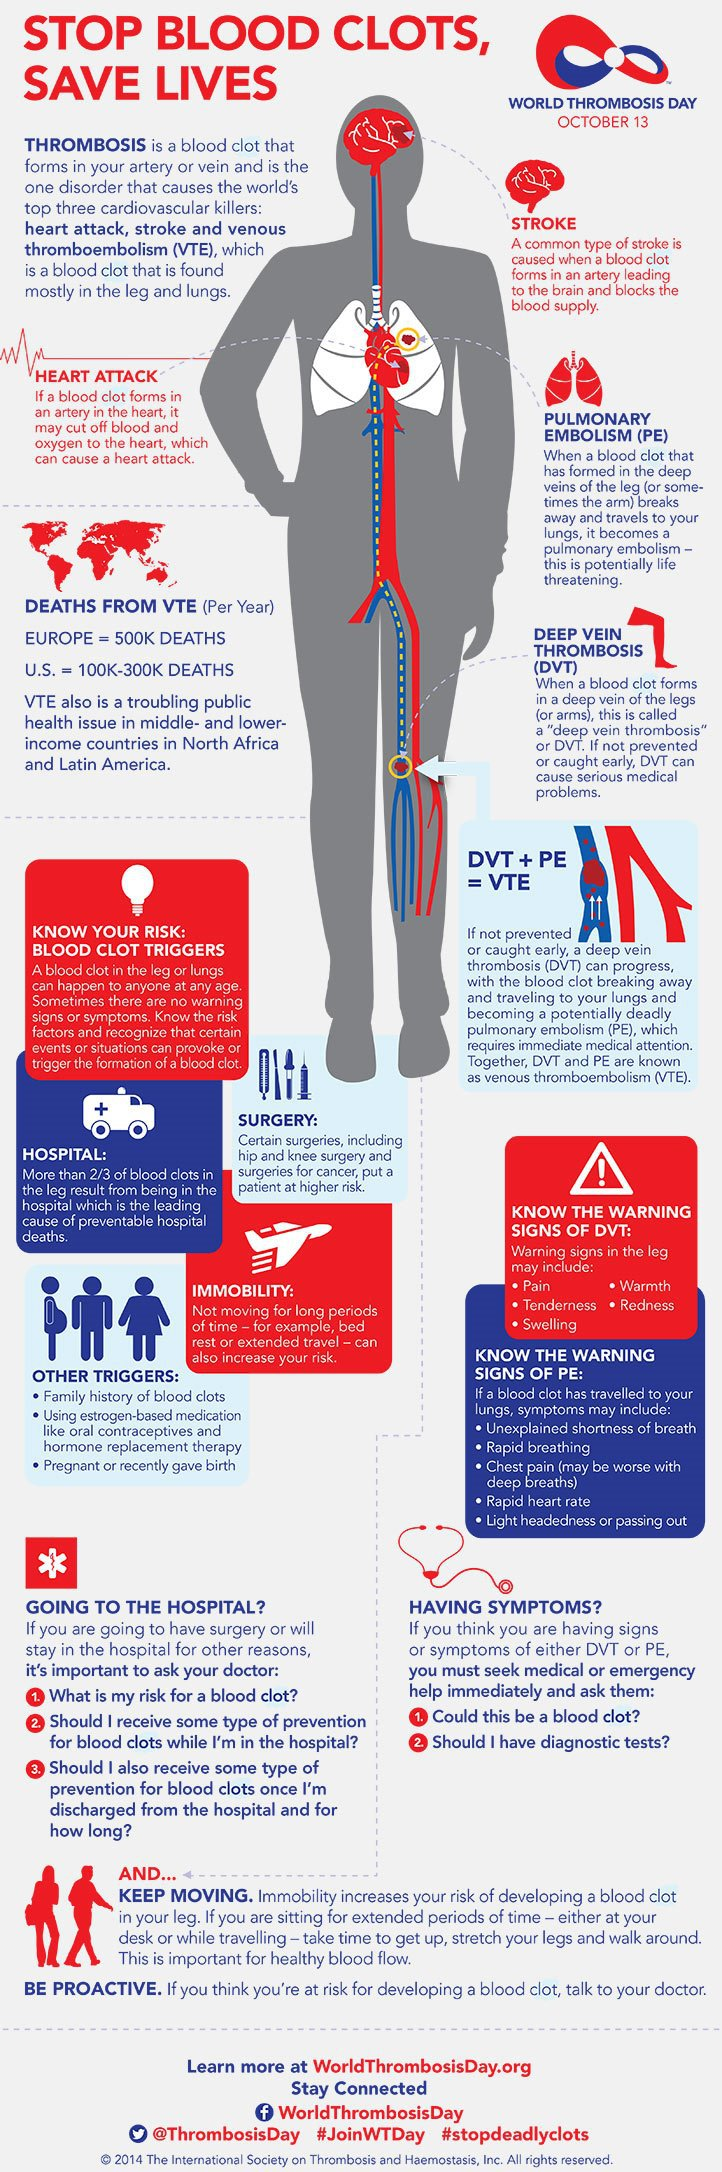 Blood clot infographic for World Thrombosis Day